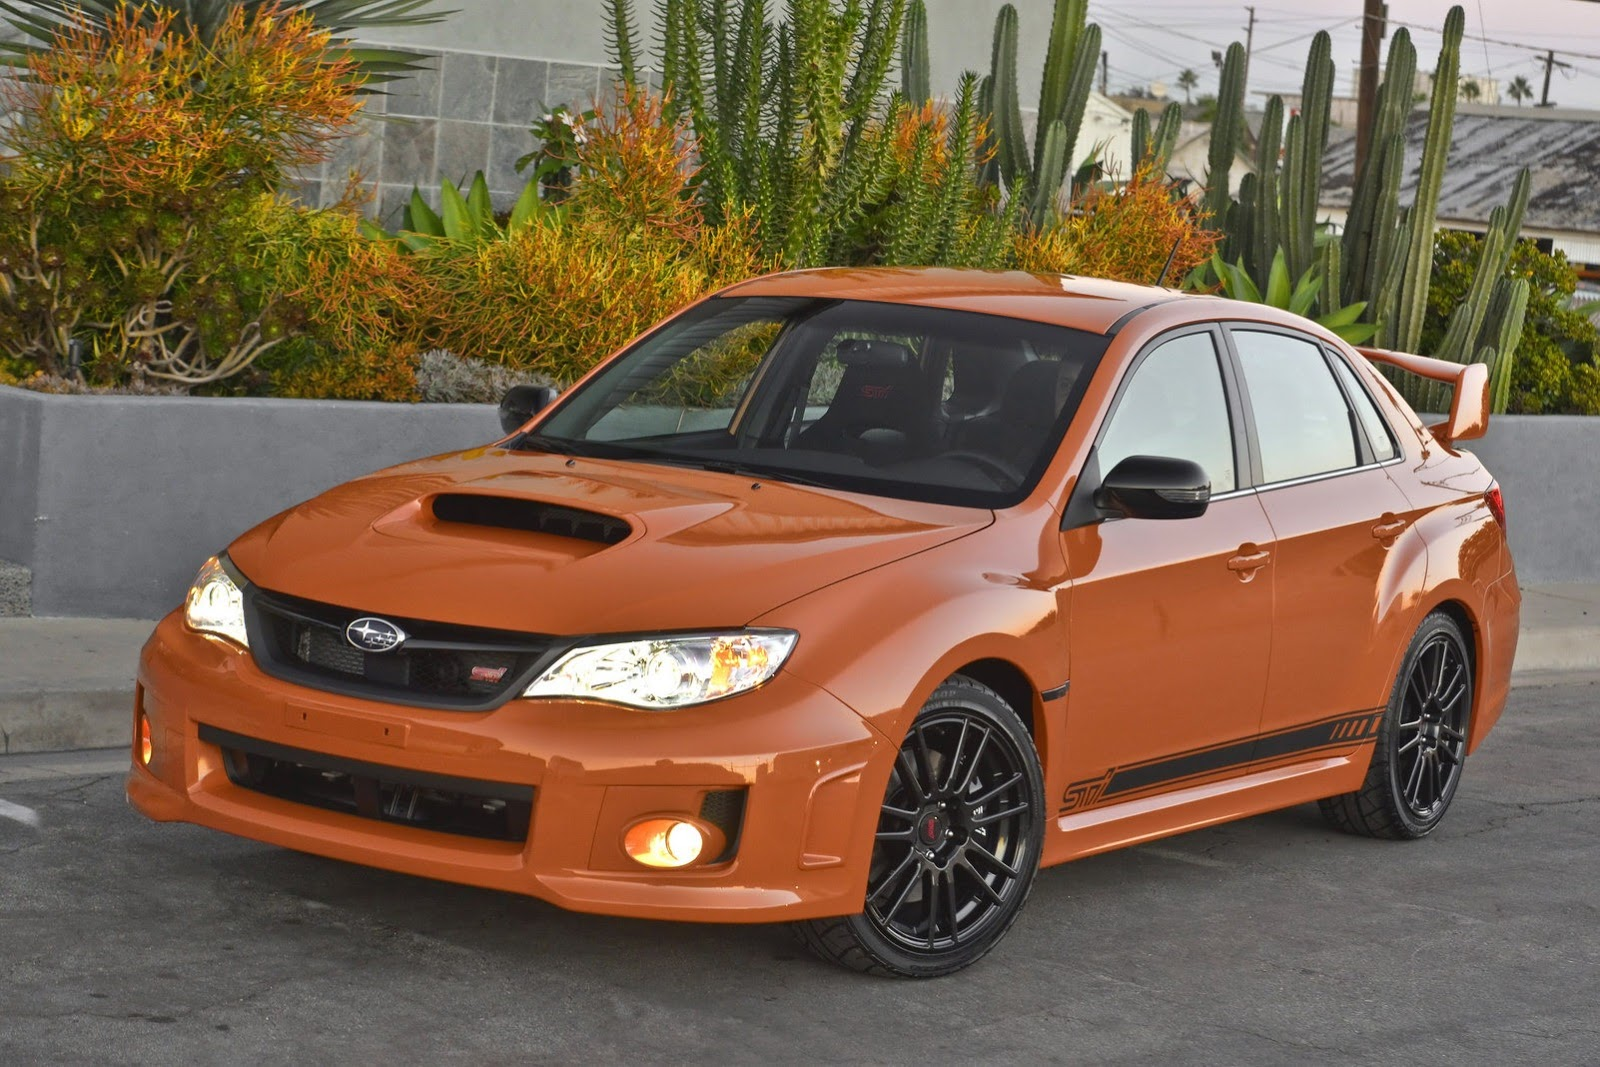 2013 Subaru Impreza WRX special editions debut at SEMA